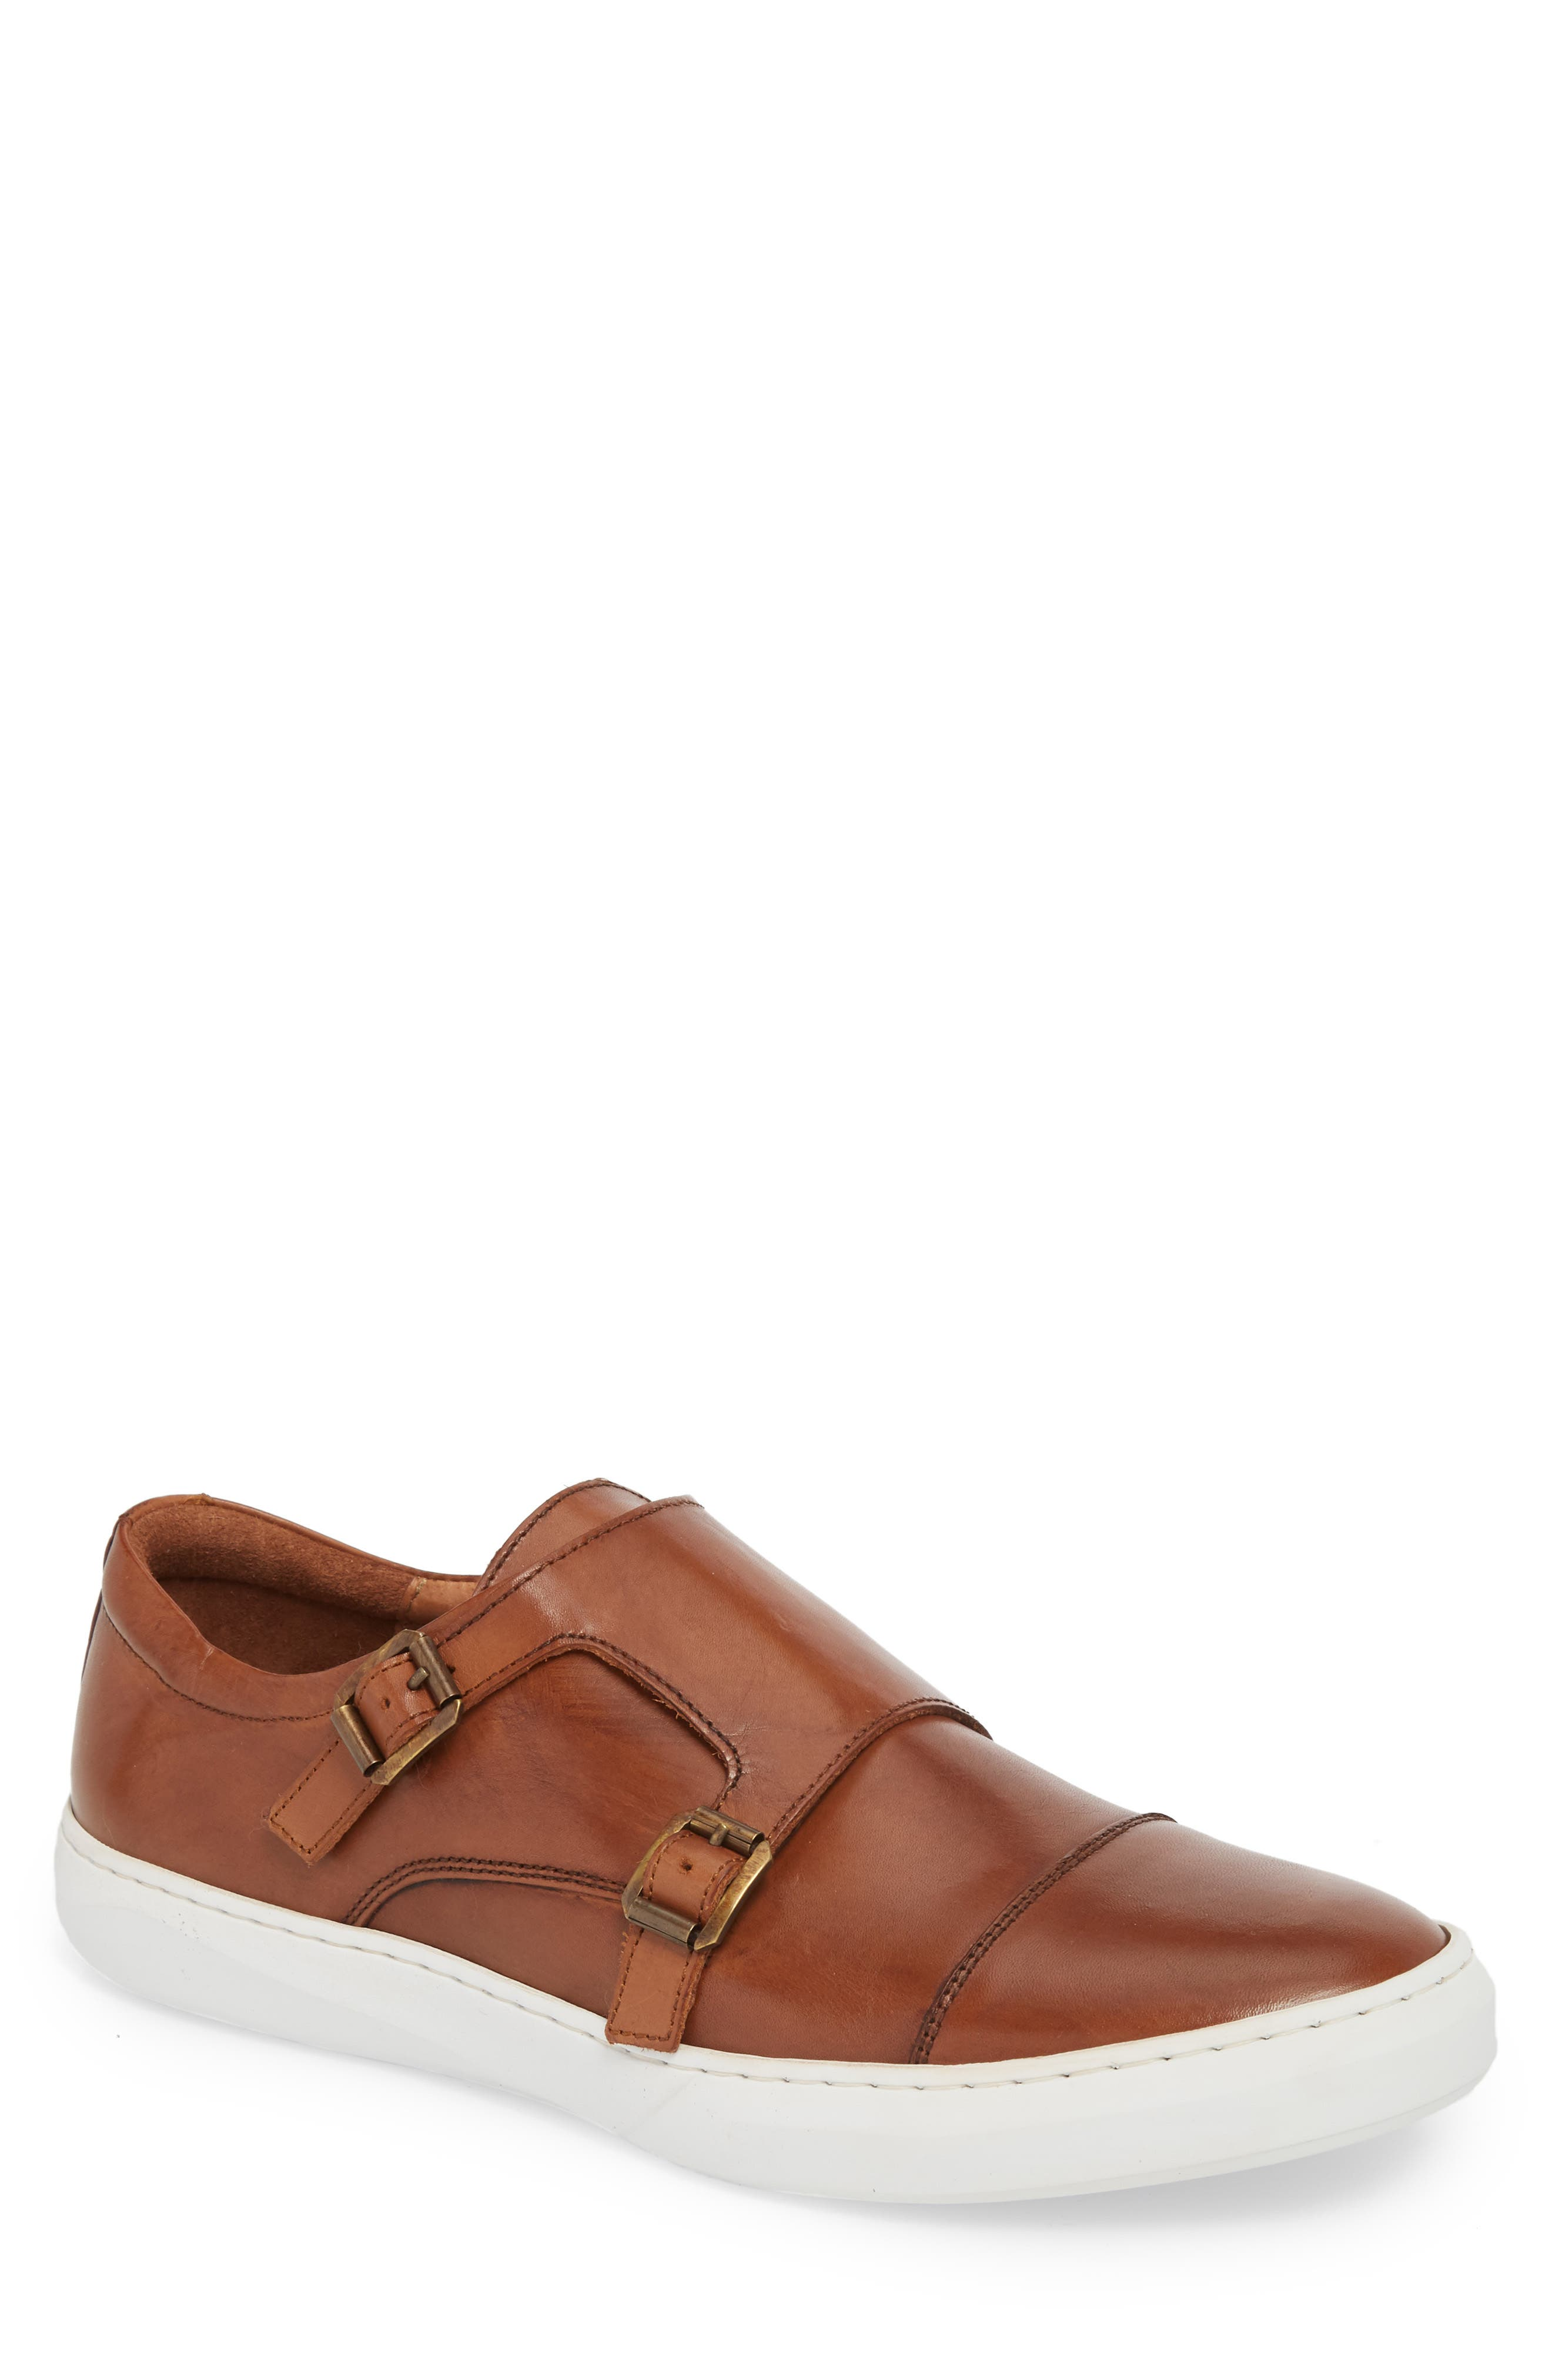 Kenneth Cole New York Whyle Double Strap Monk Sneaker, Brown